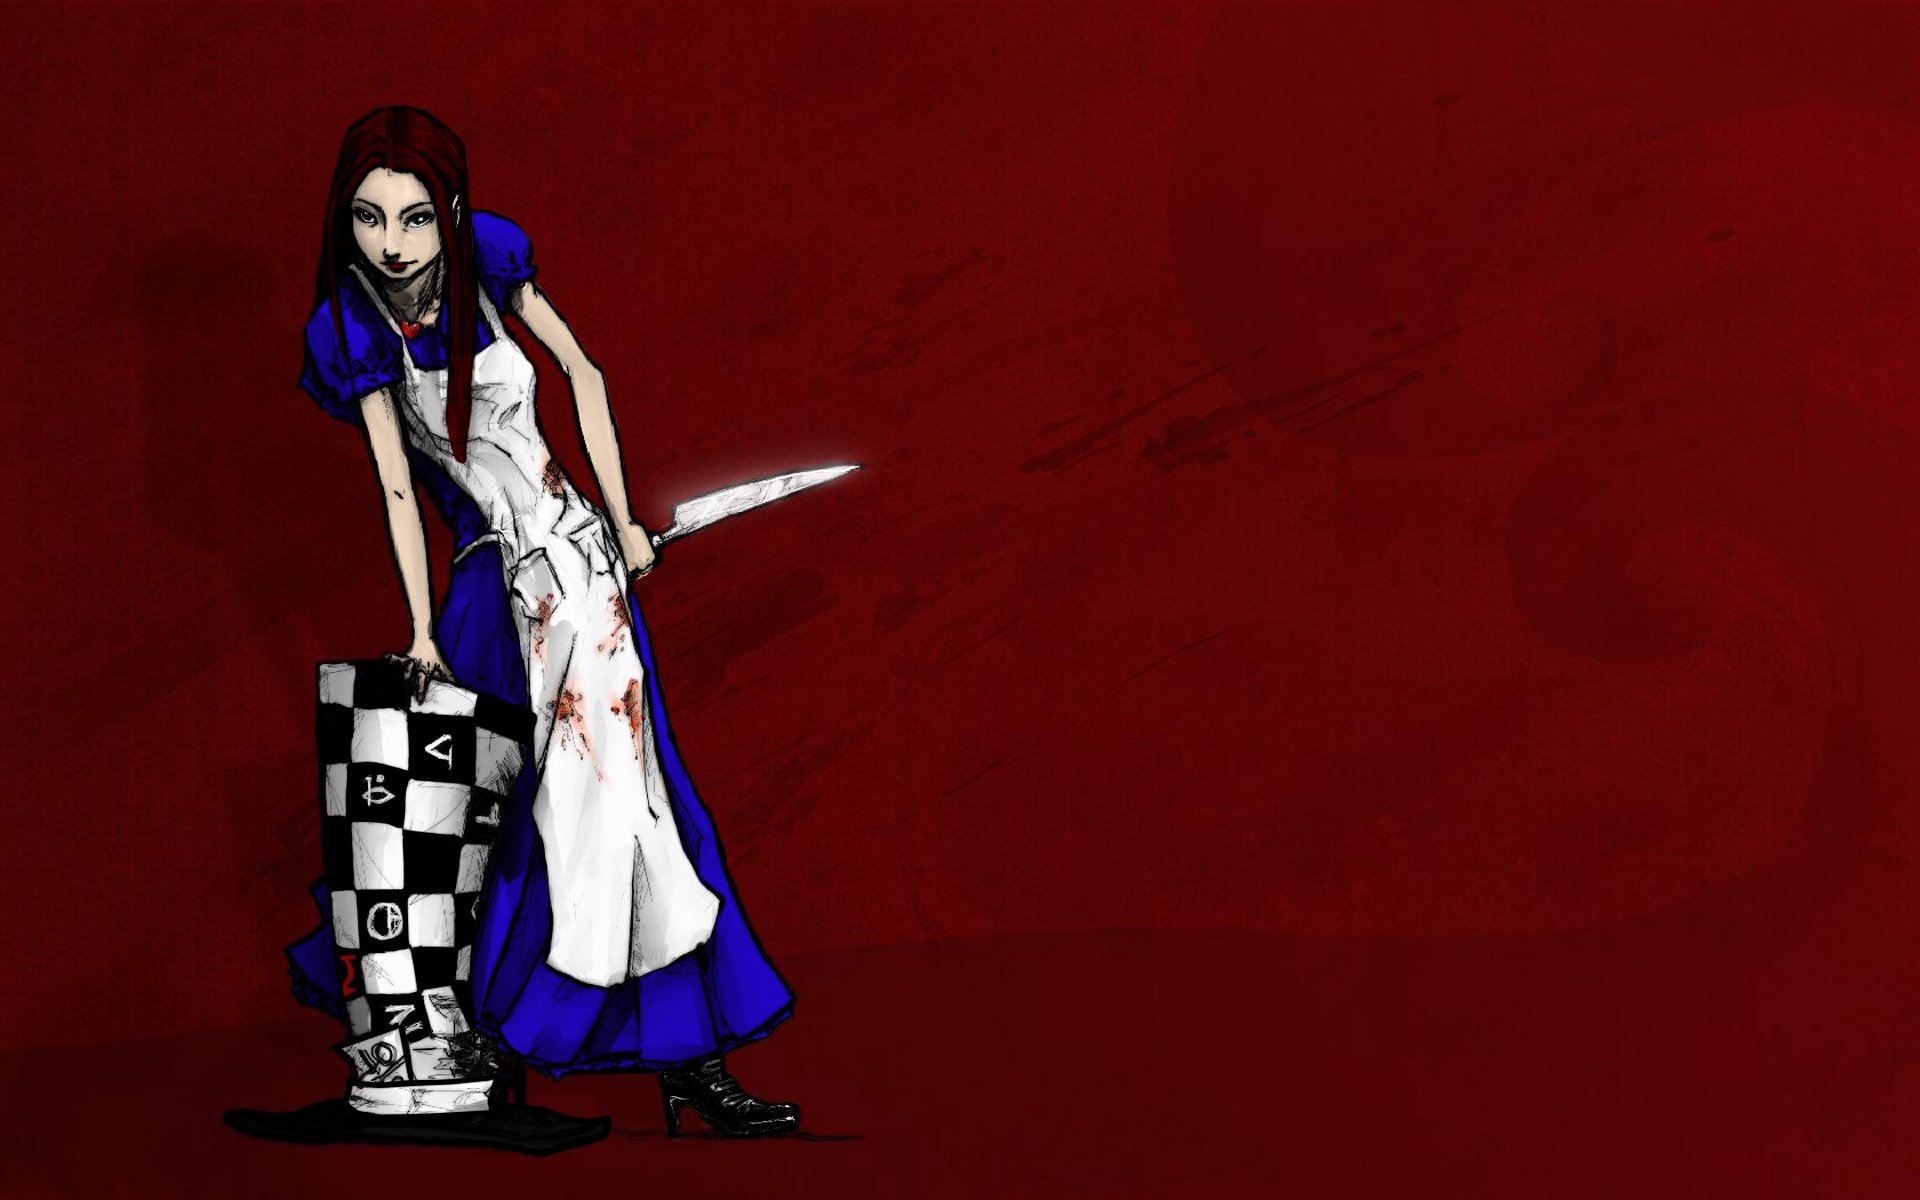 Alice In Wonderland Wallpaper Iphone Alice Madness Returns Full Hd Wallpaper And Background